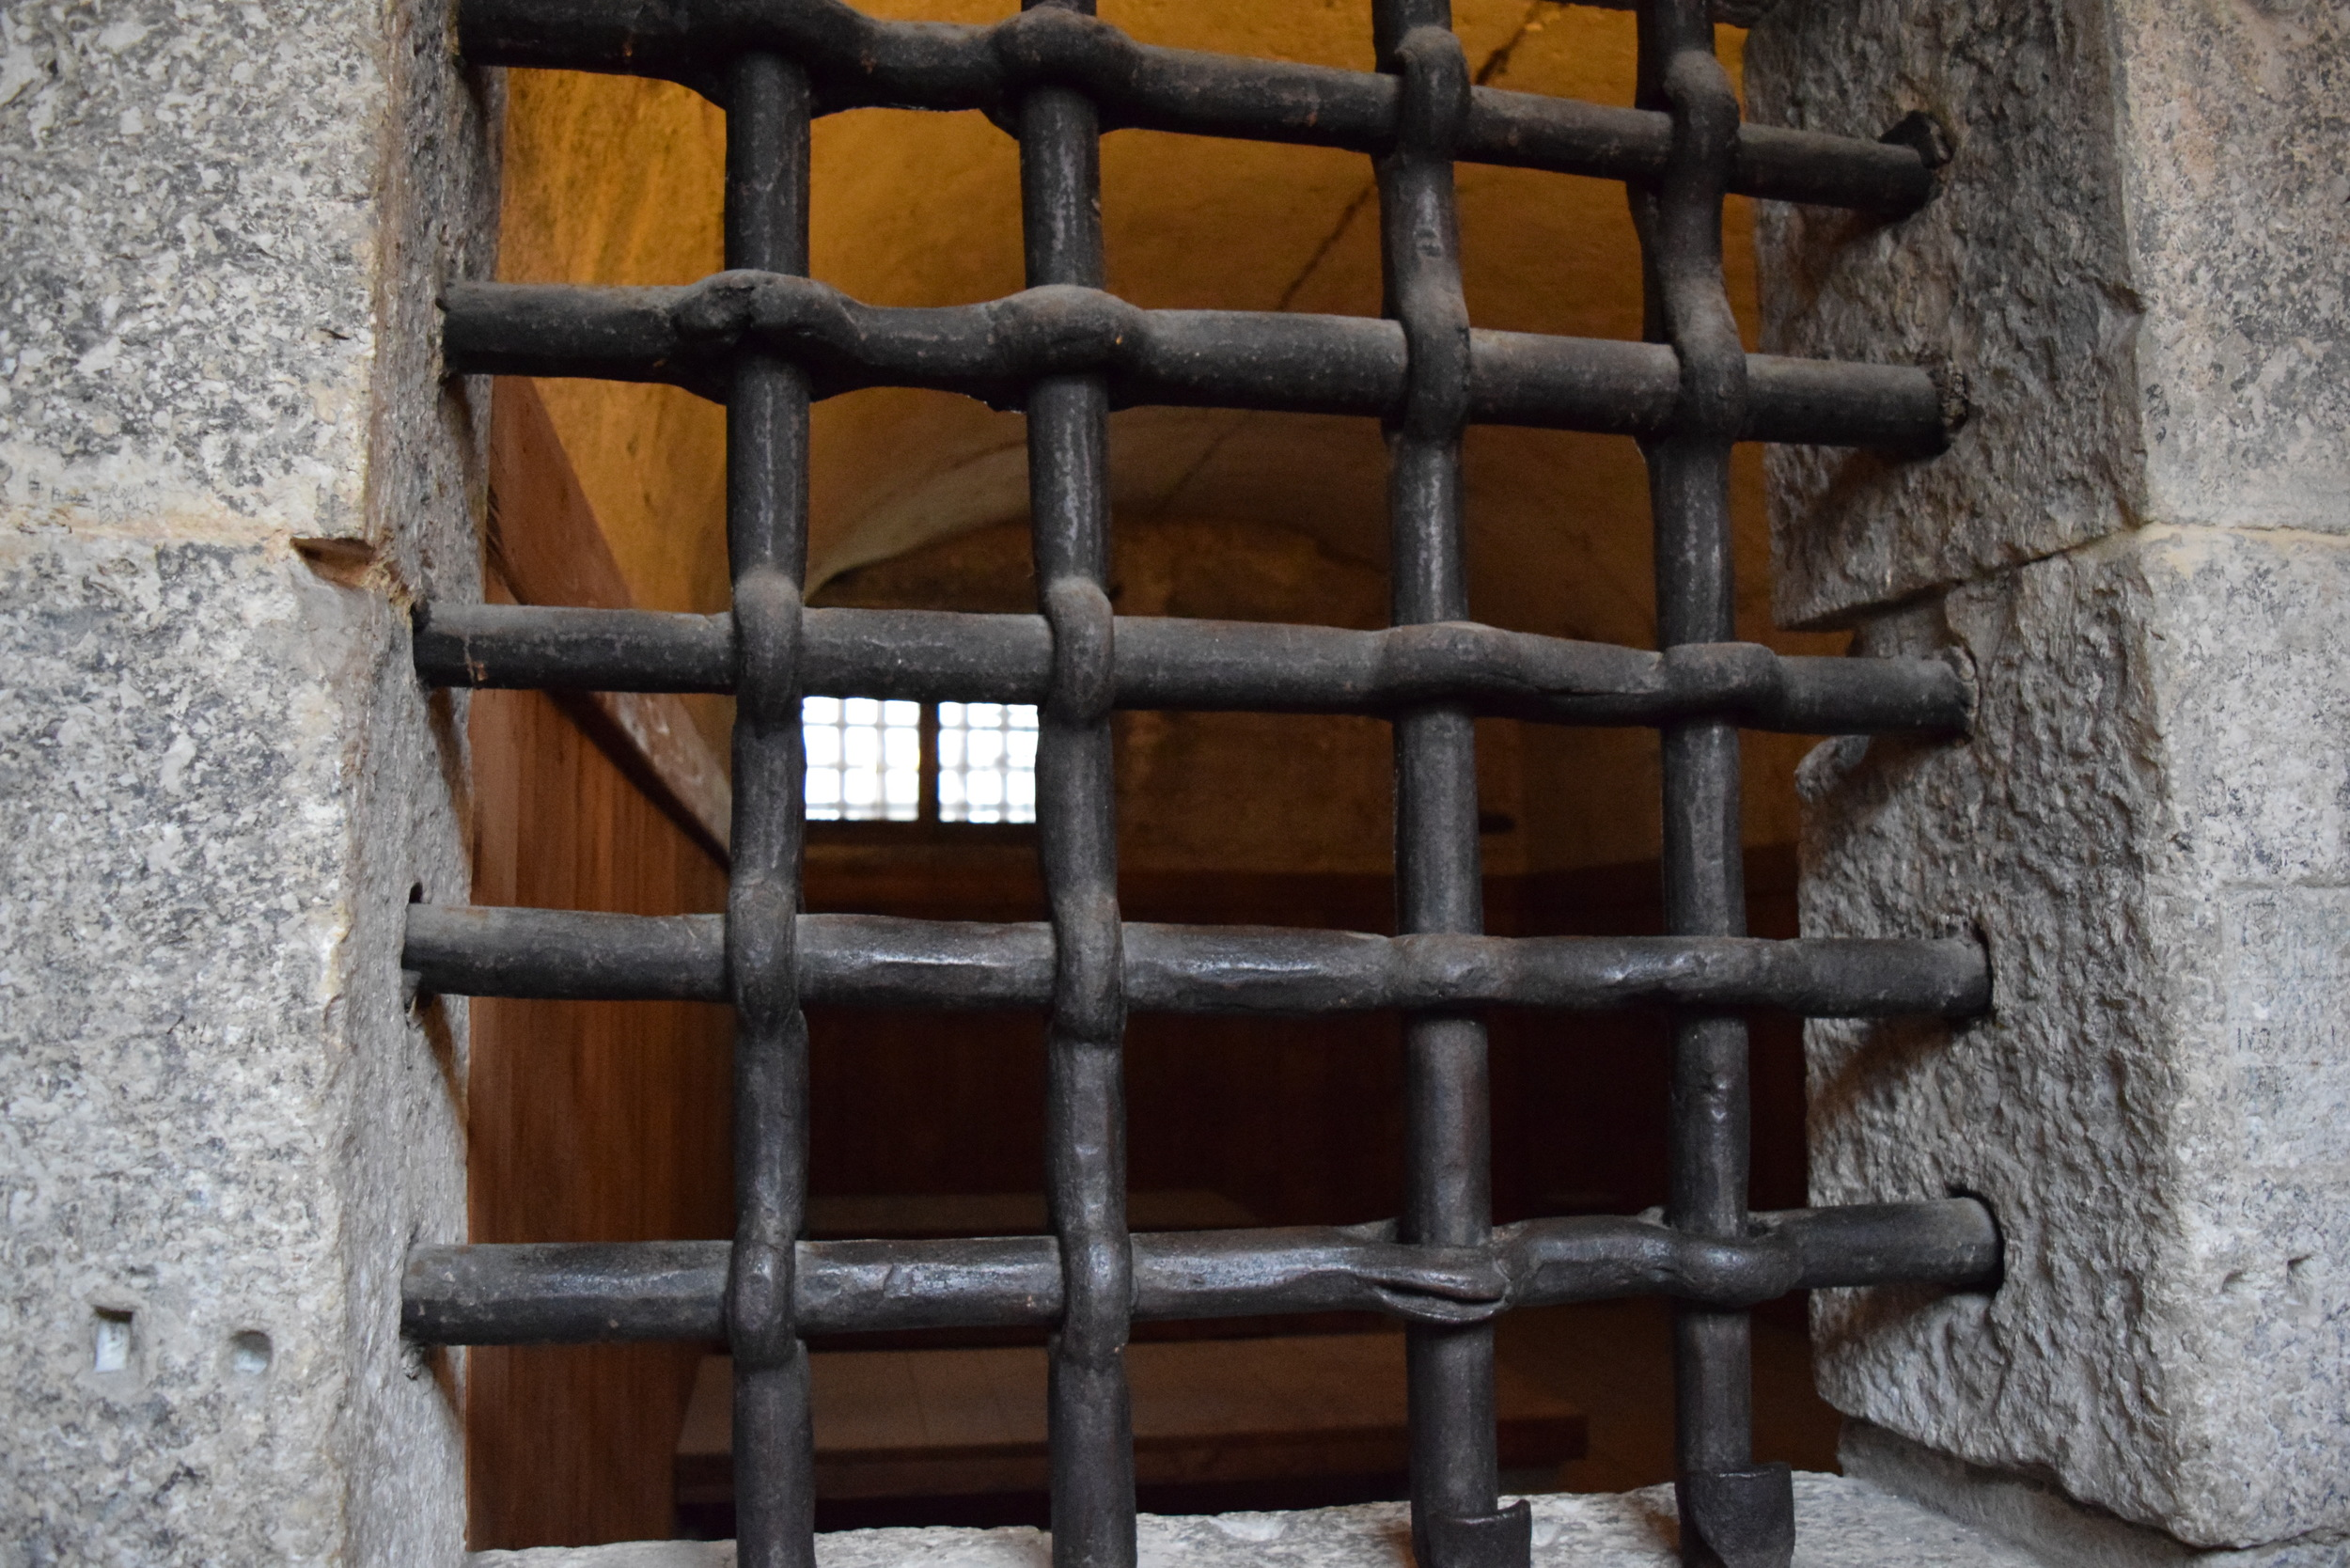 The Palazzo also includes a prison that once housed  Giacomo Casanova